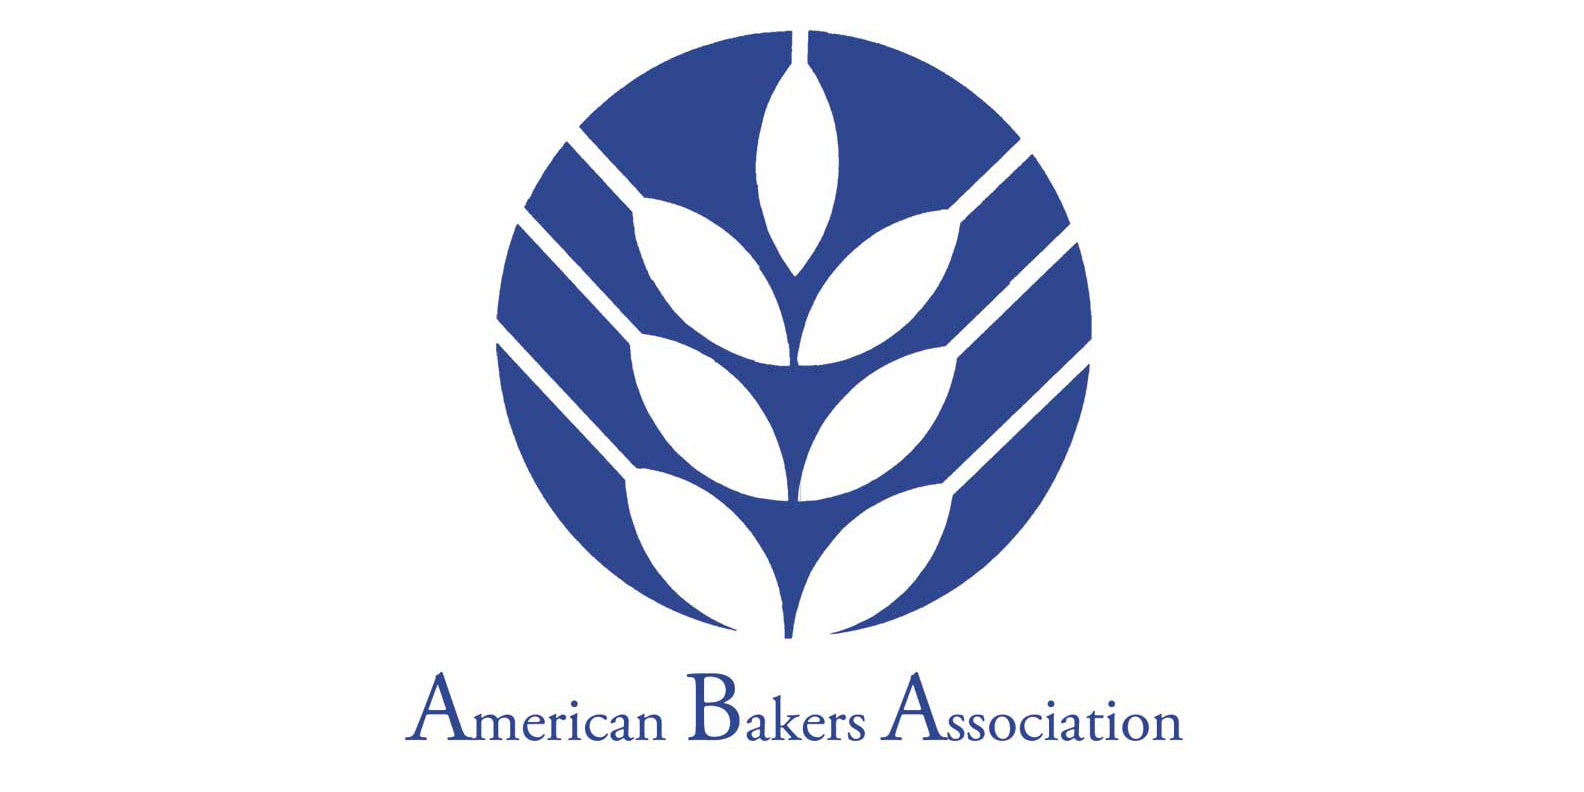 American Bakers Association logo, Decker